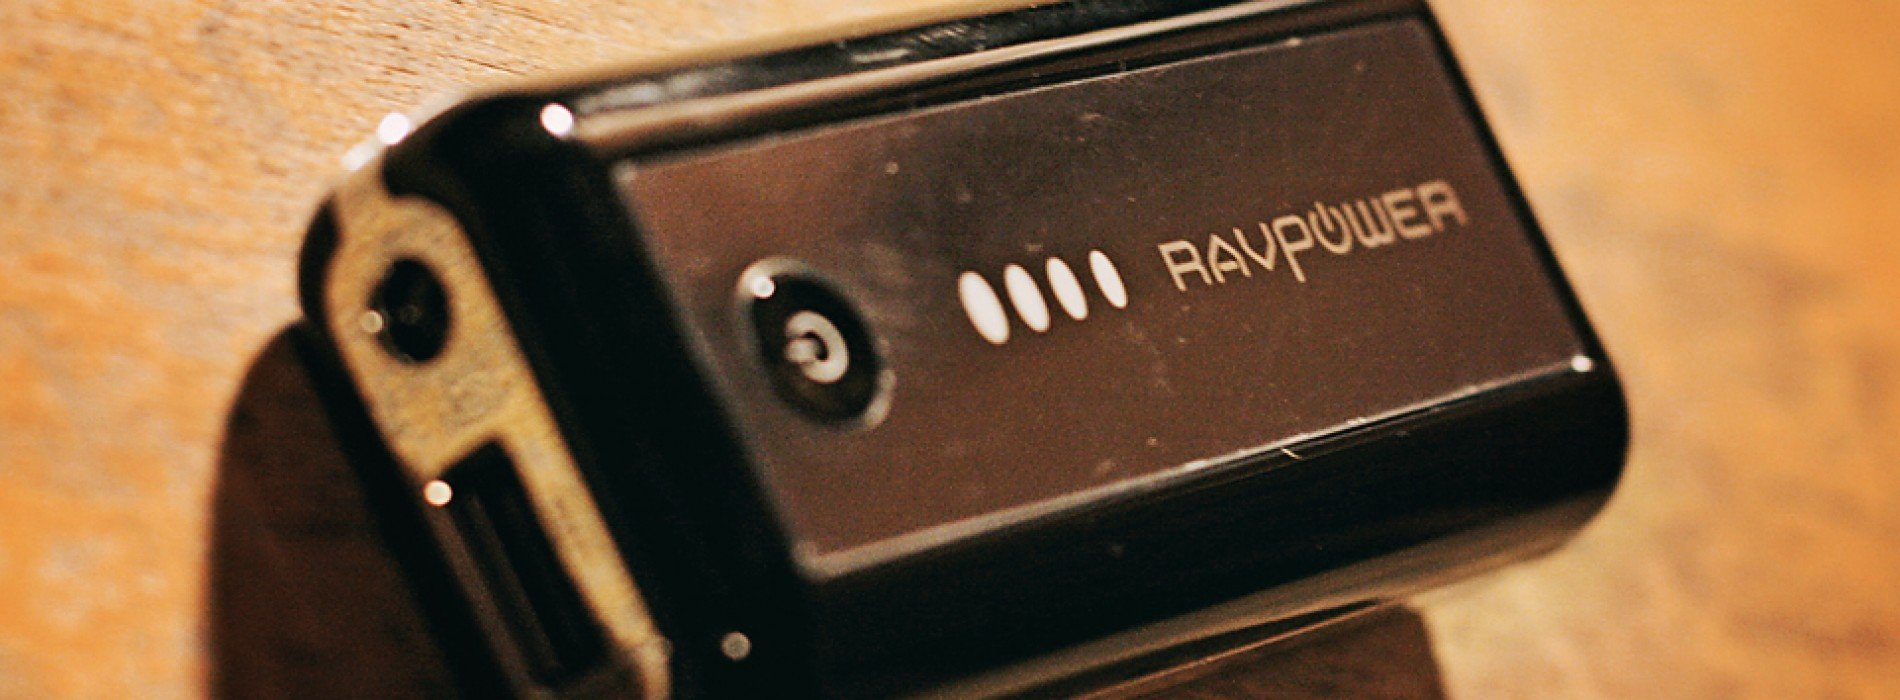 RAVPower Element 5600mAh Battery Pack review (Update)